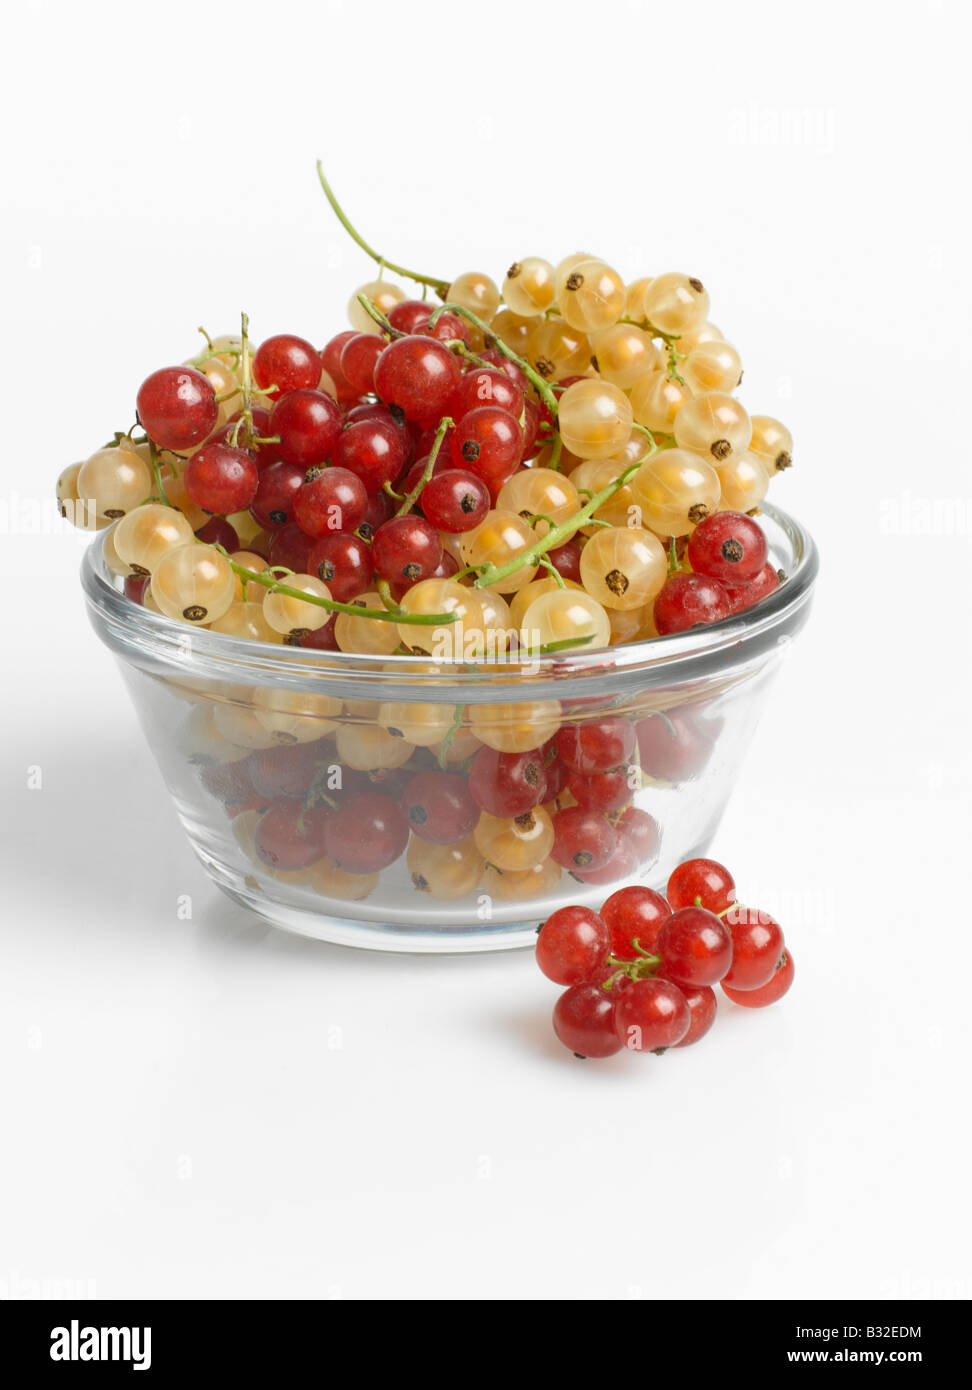 Bowl of Red and White Currants cut out on white background - Stock Image